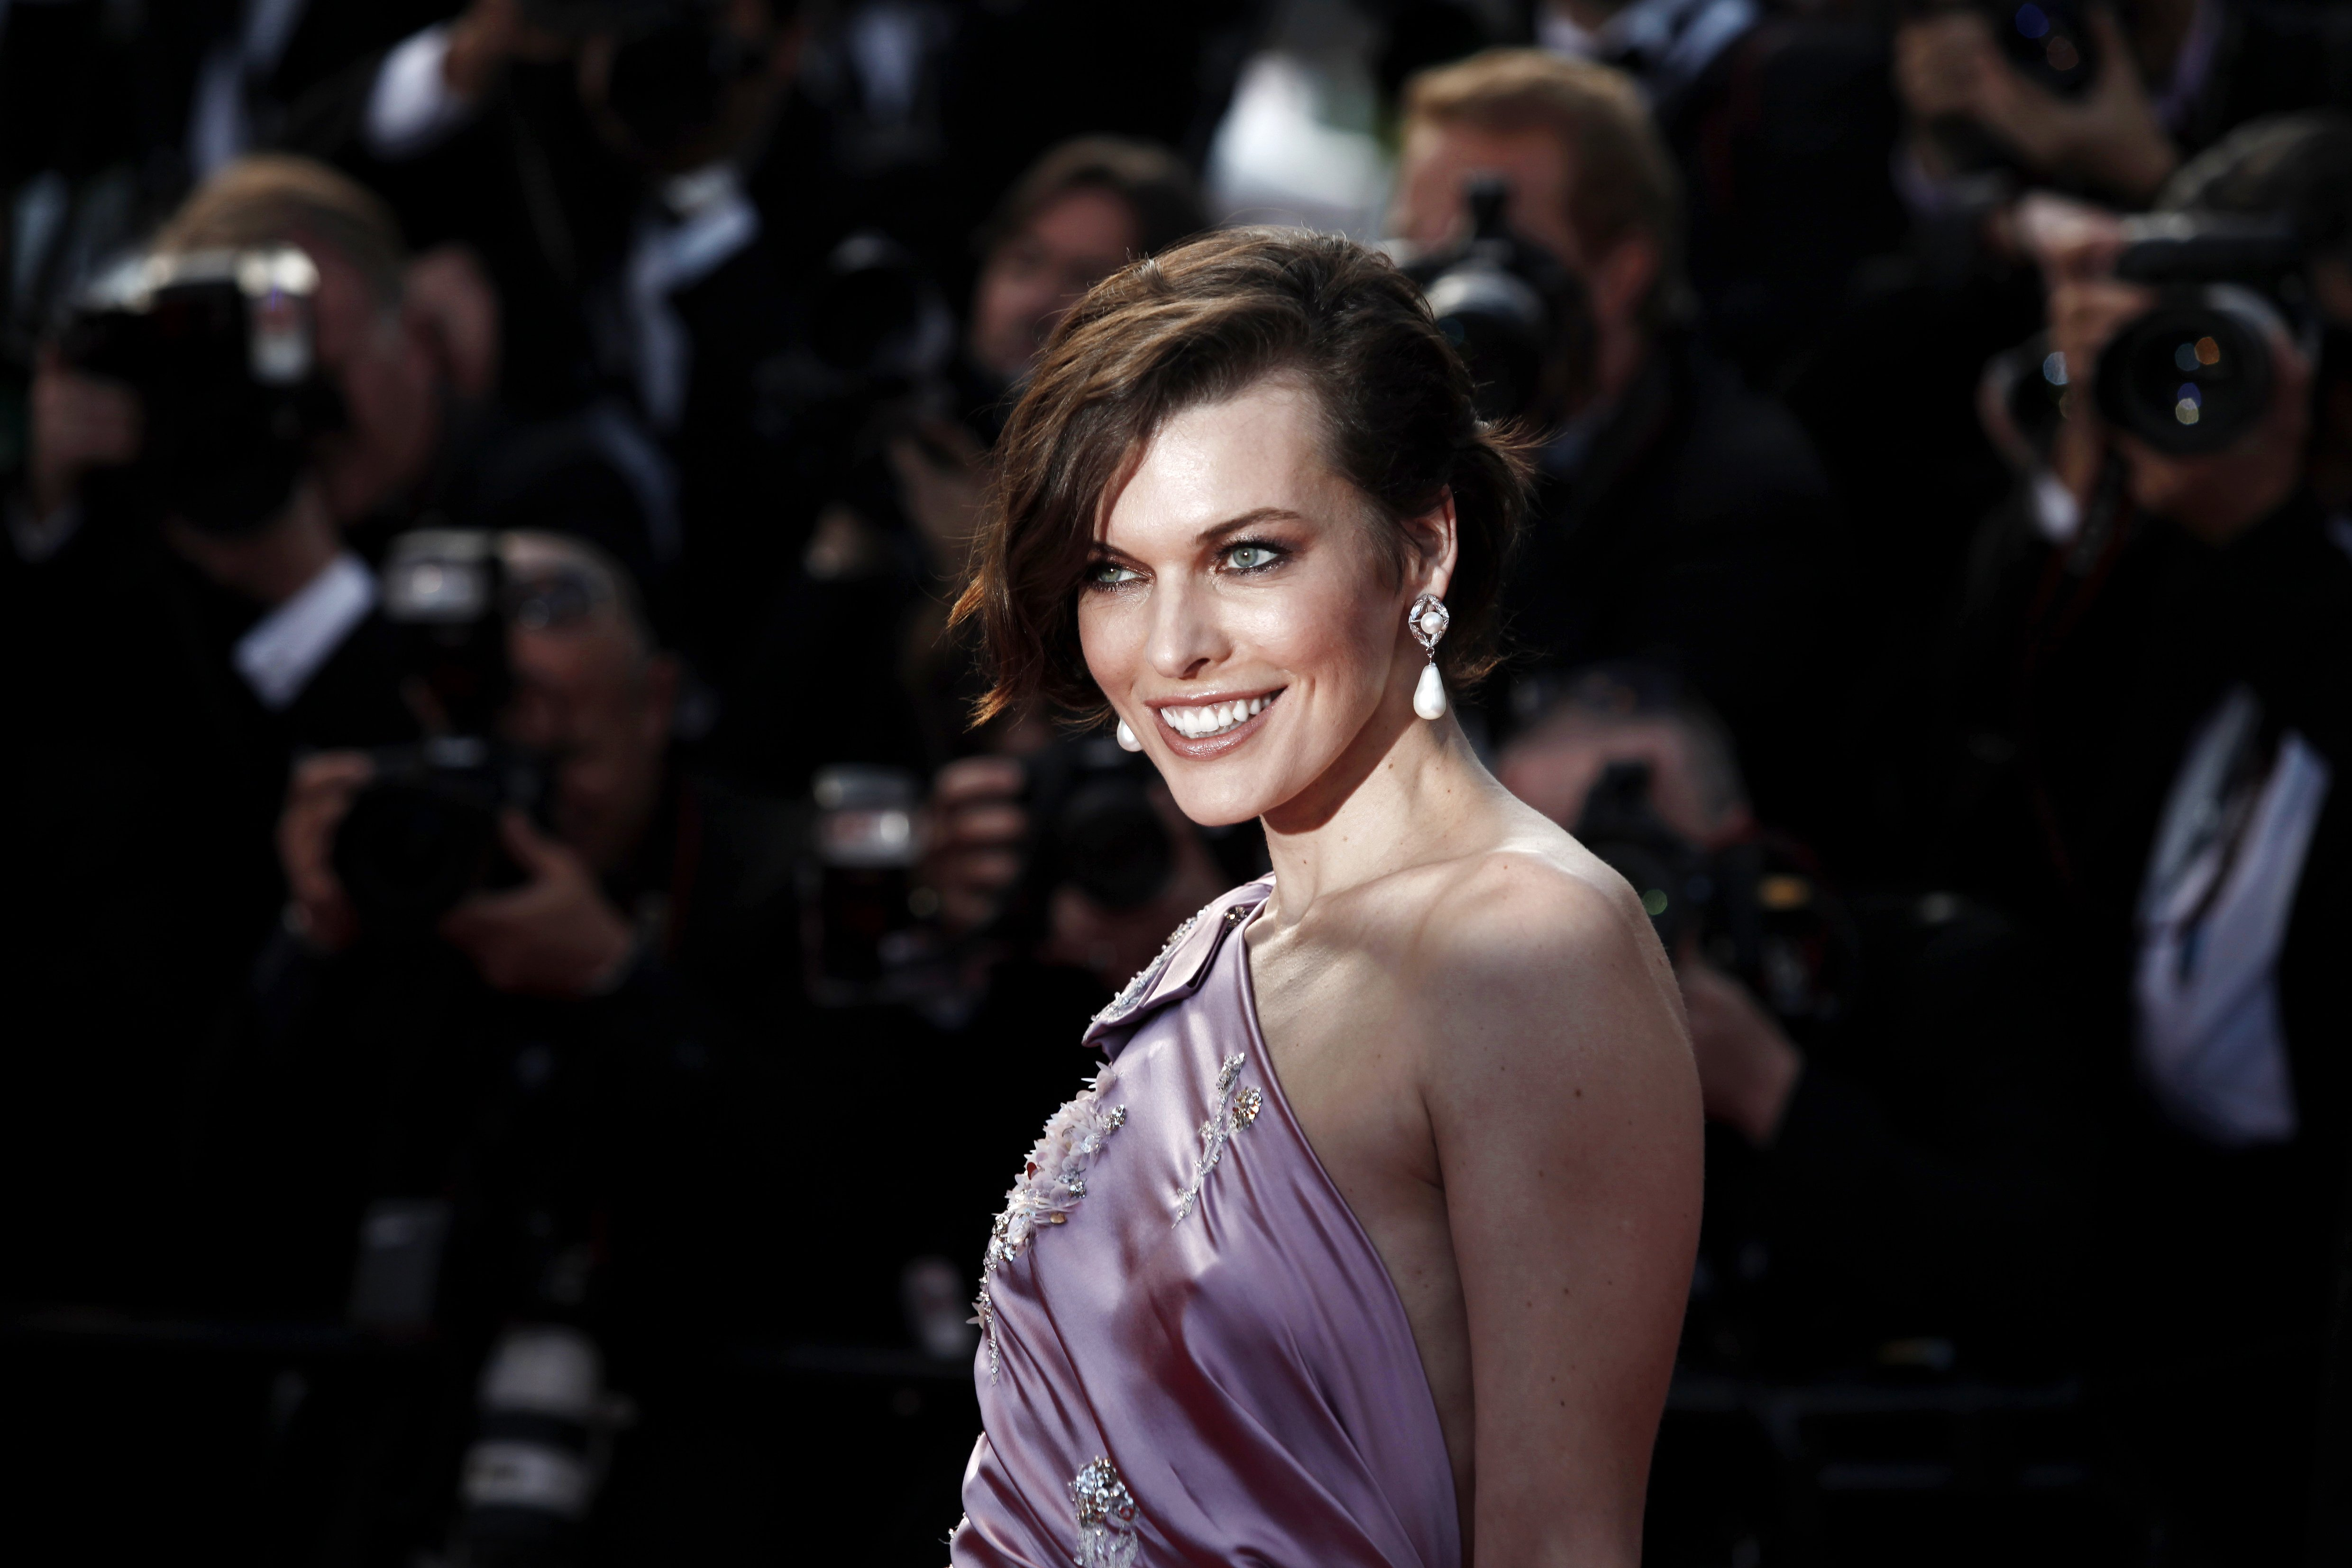 Milla Jovovich attends the 'On The Road' Premiere during the 65th Cannes Film Festival on May 23, 2012 | Photo: Shutterstock